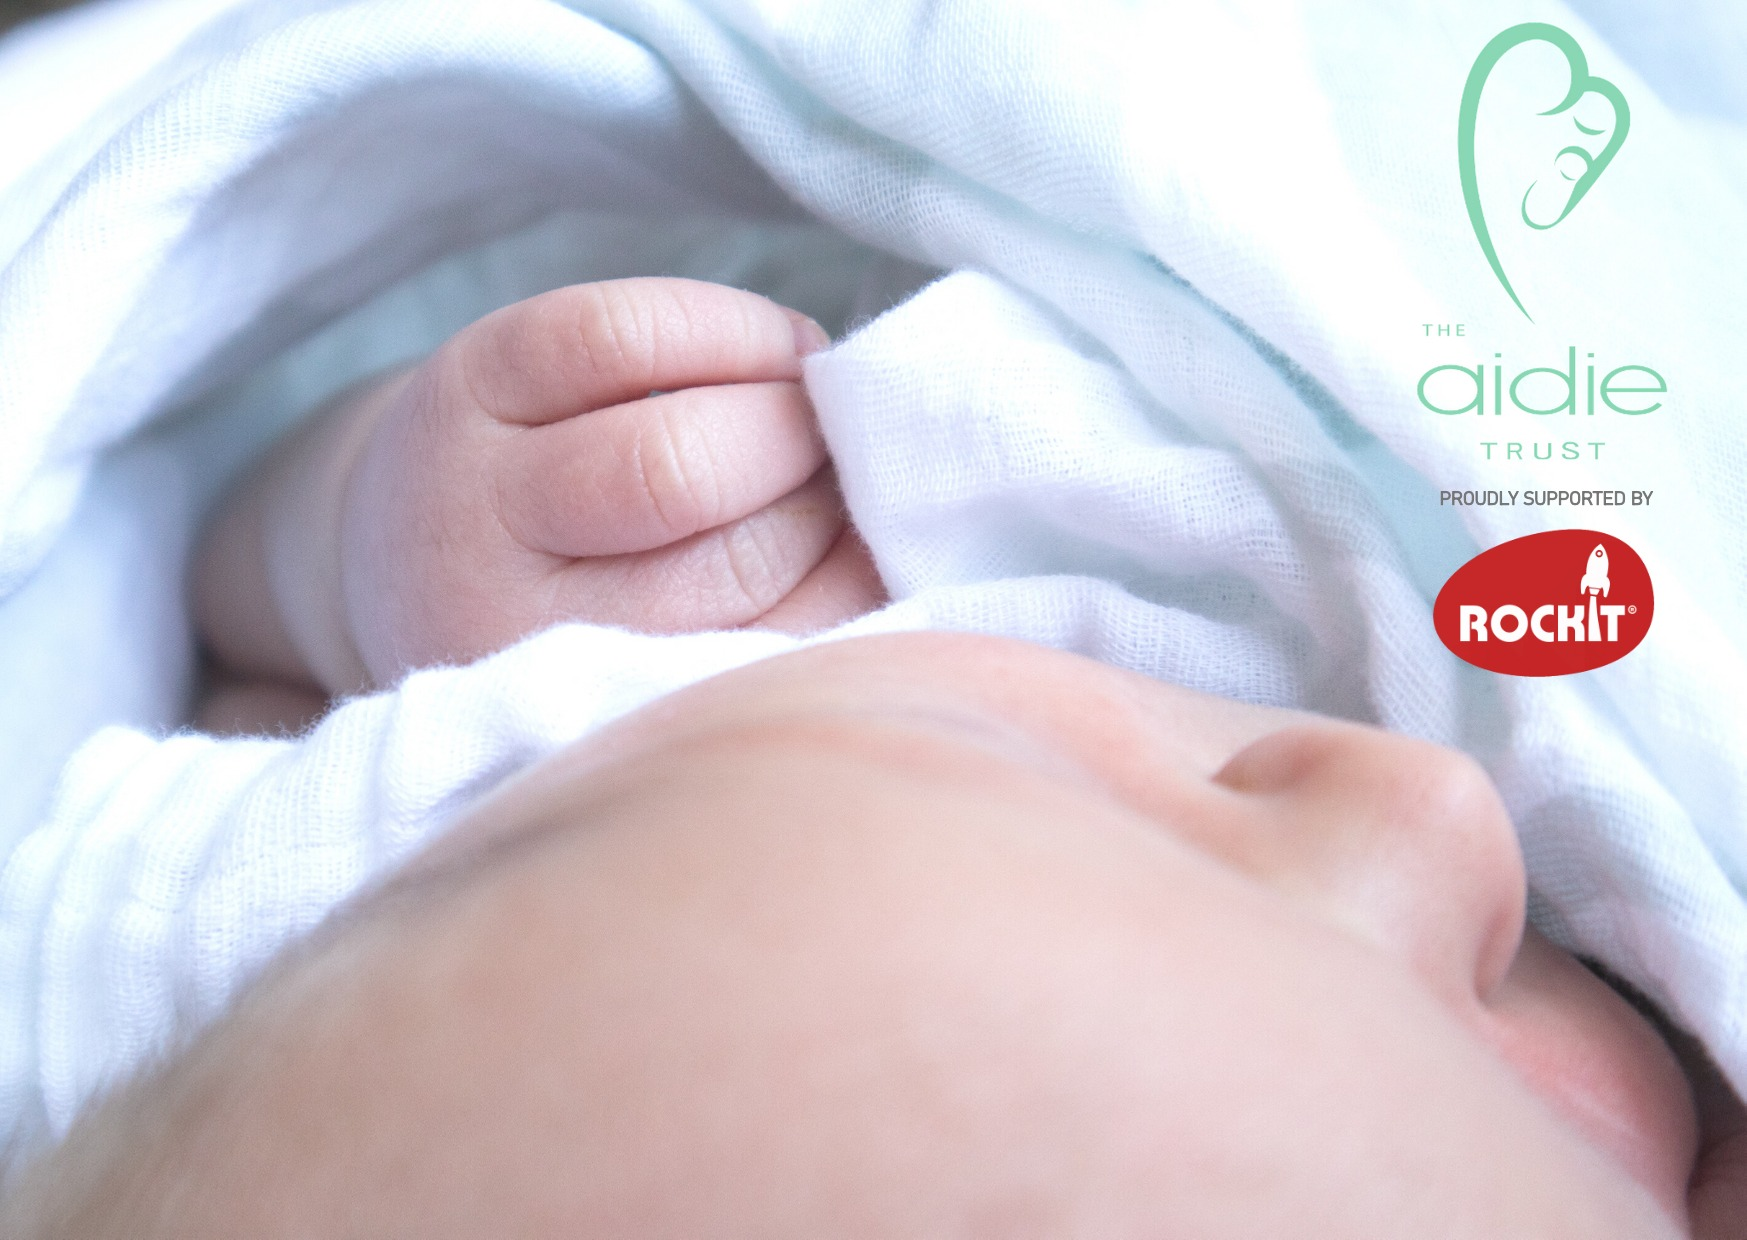 Rockit is proud to support the UK's first baby-centred domestic abuse charity